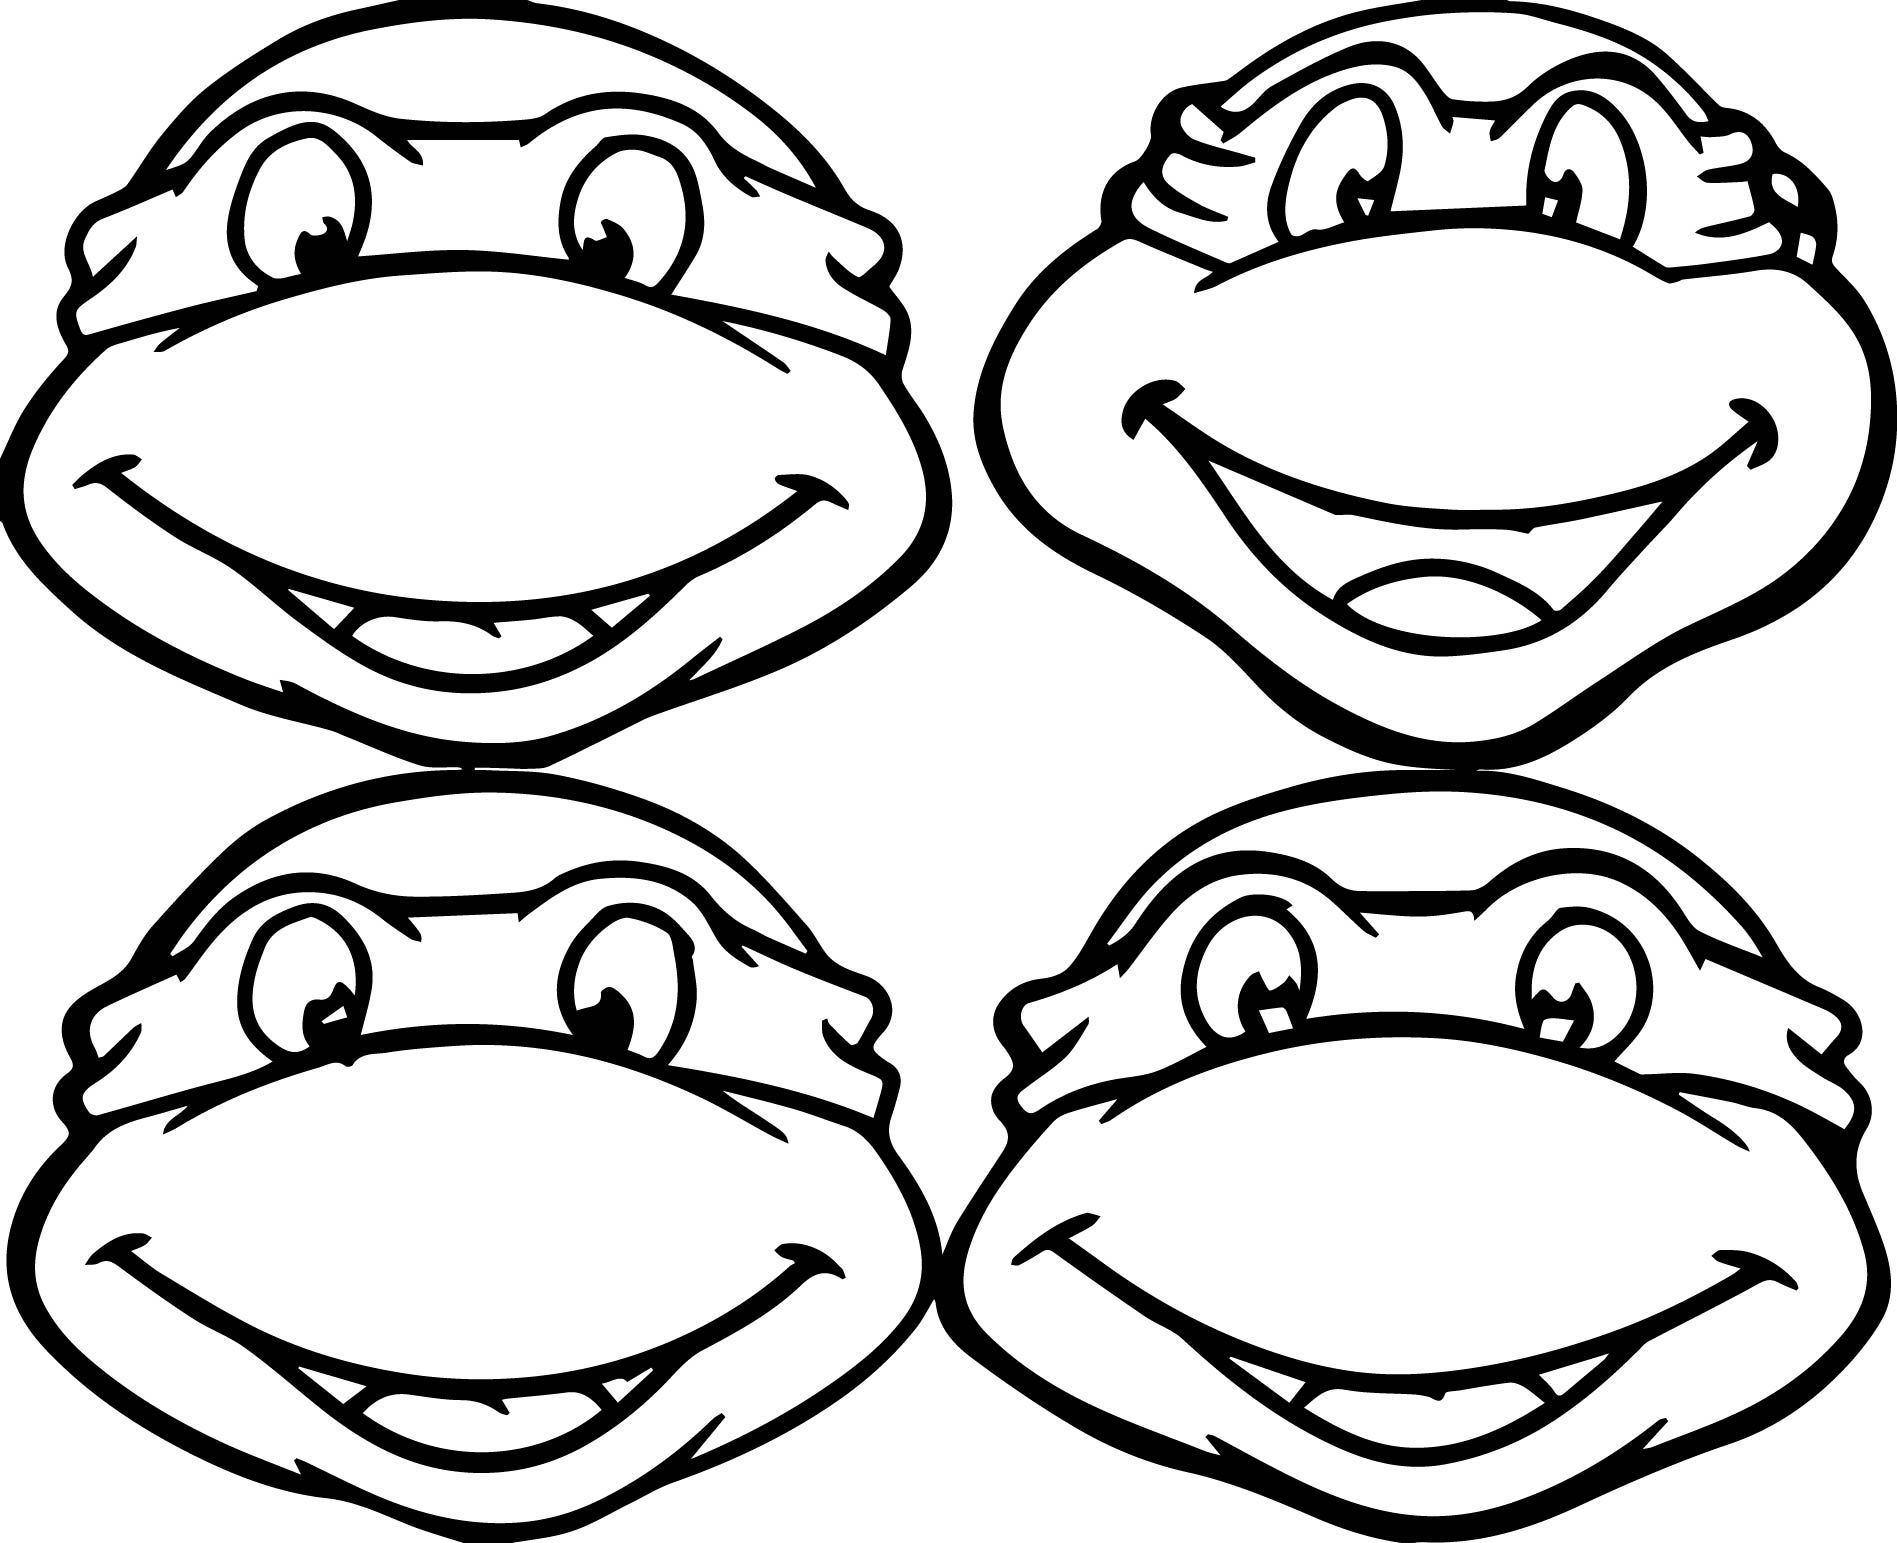 coloring pages turtles ninja songs - photo#26